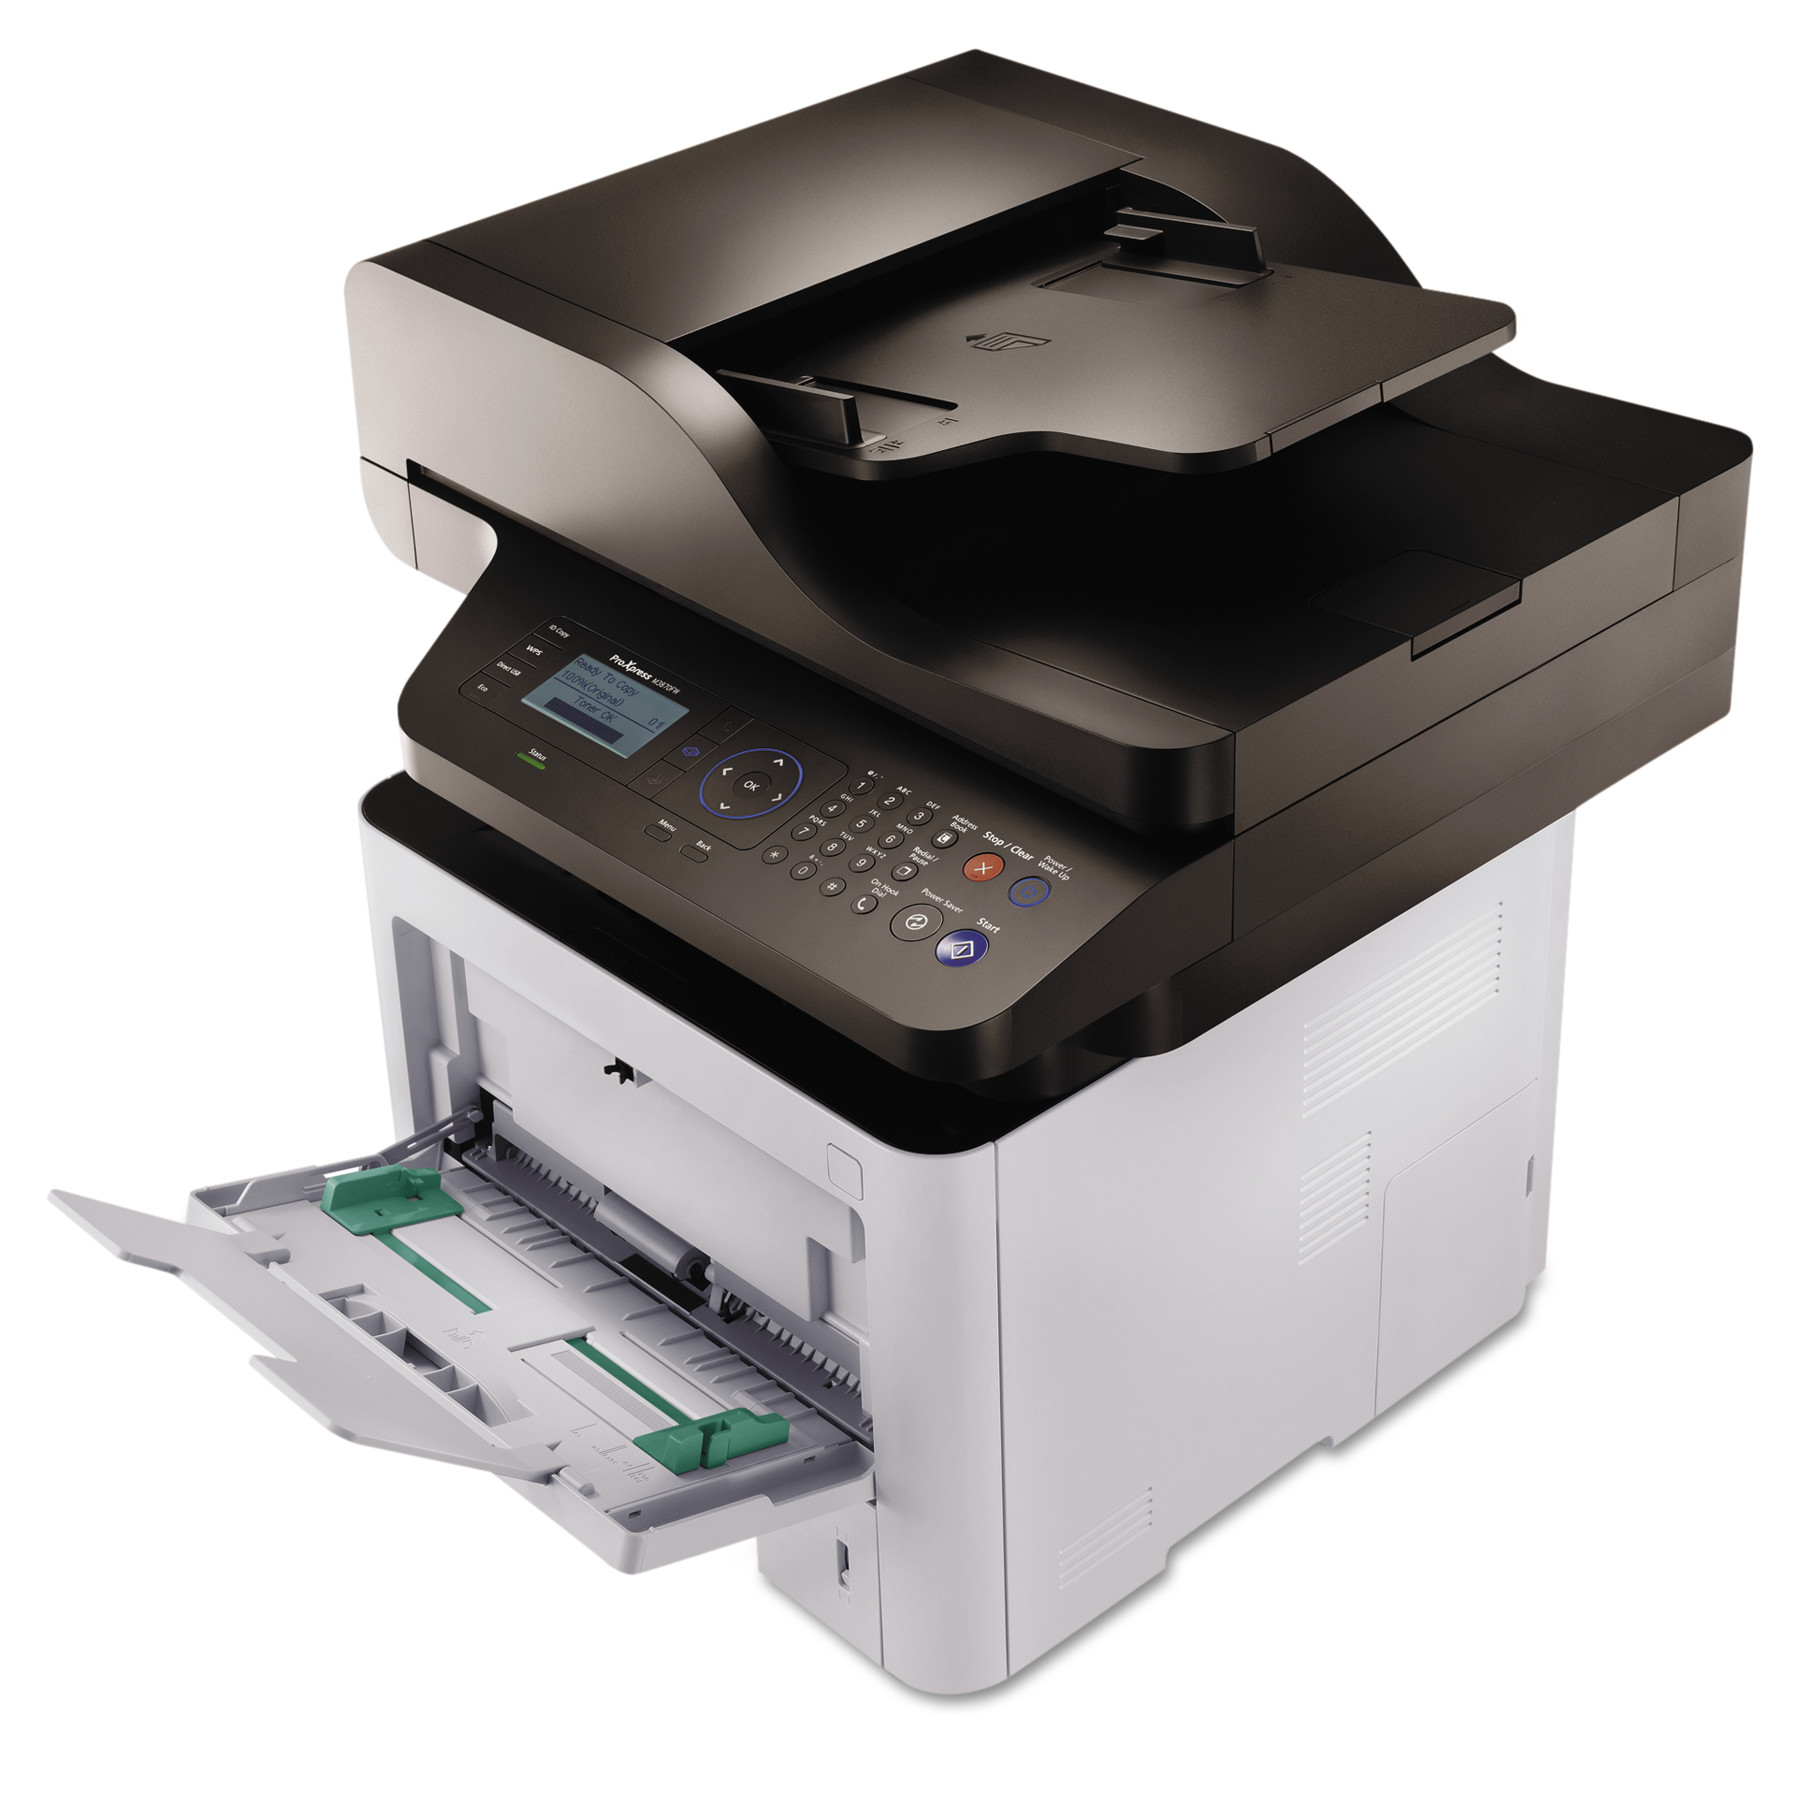 Samsung ProXpress M3870FW Wireless Multifunction Laser Printer, Copy Fax Print Scan by Samsung